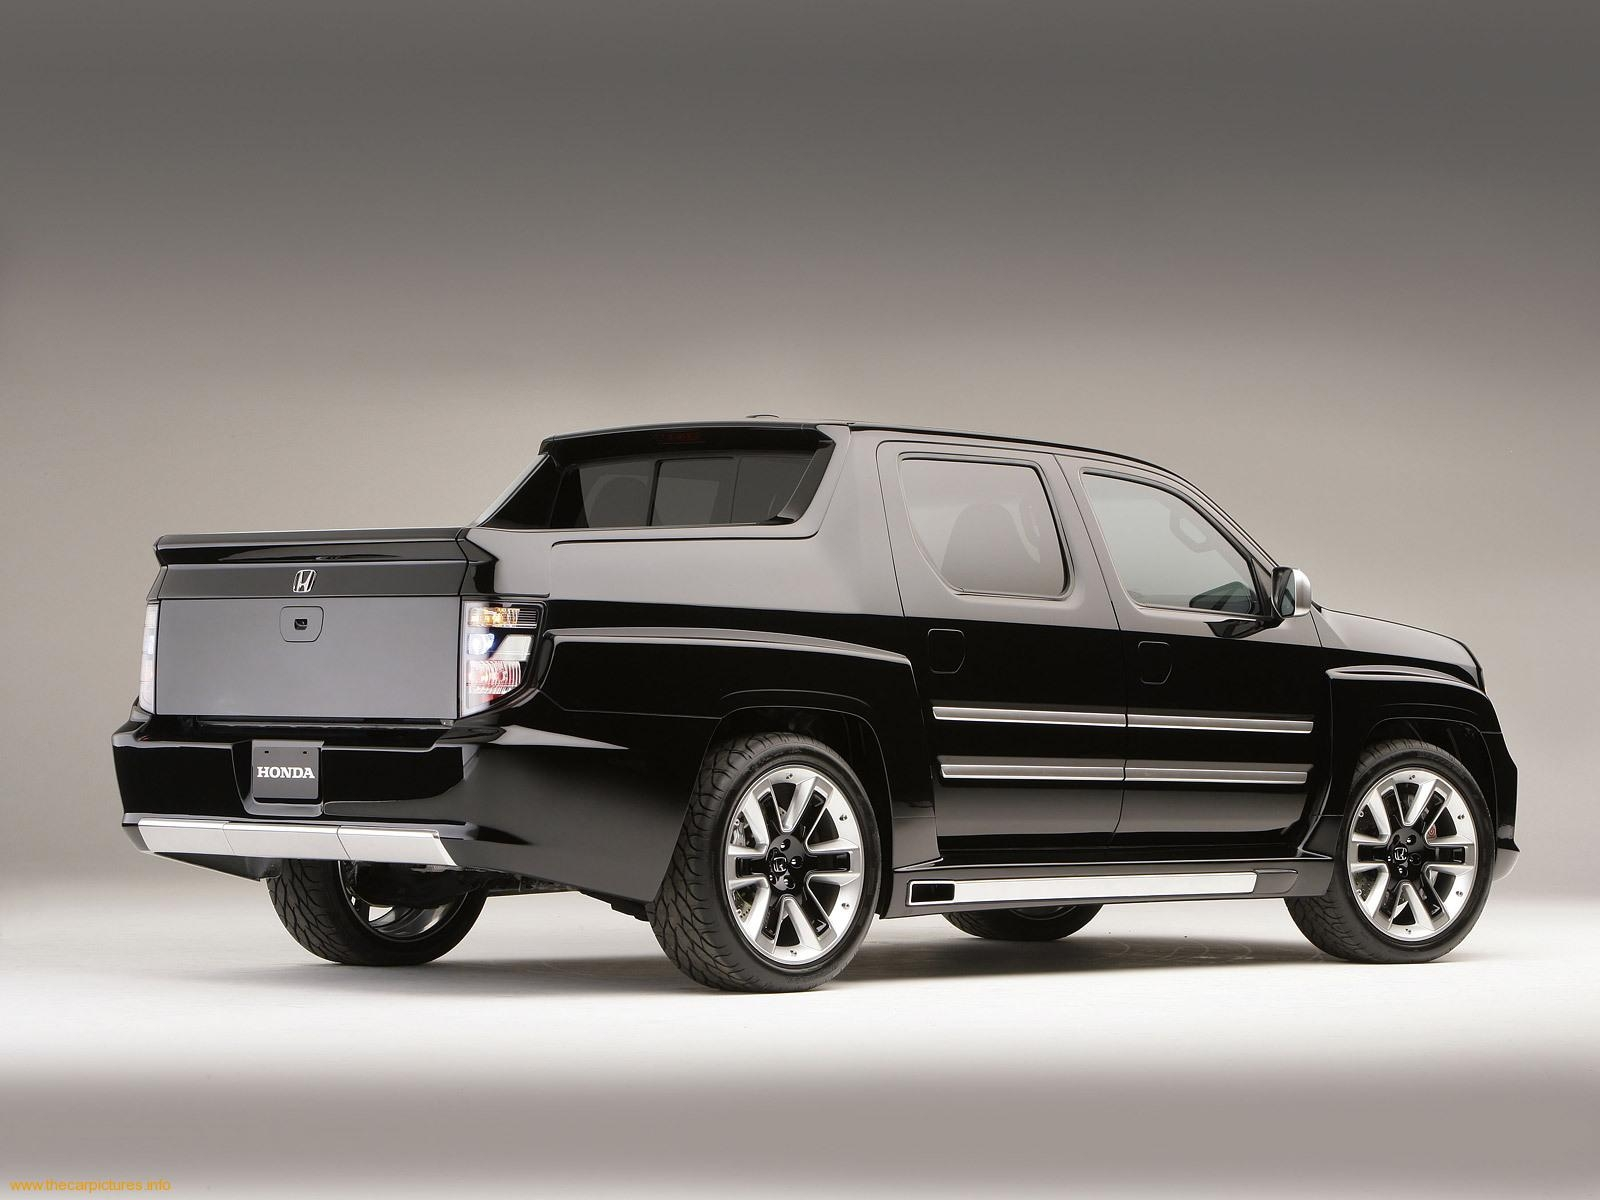 Honda Ridgeline Mpg Free Download Image Of